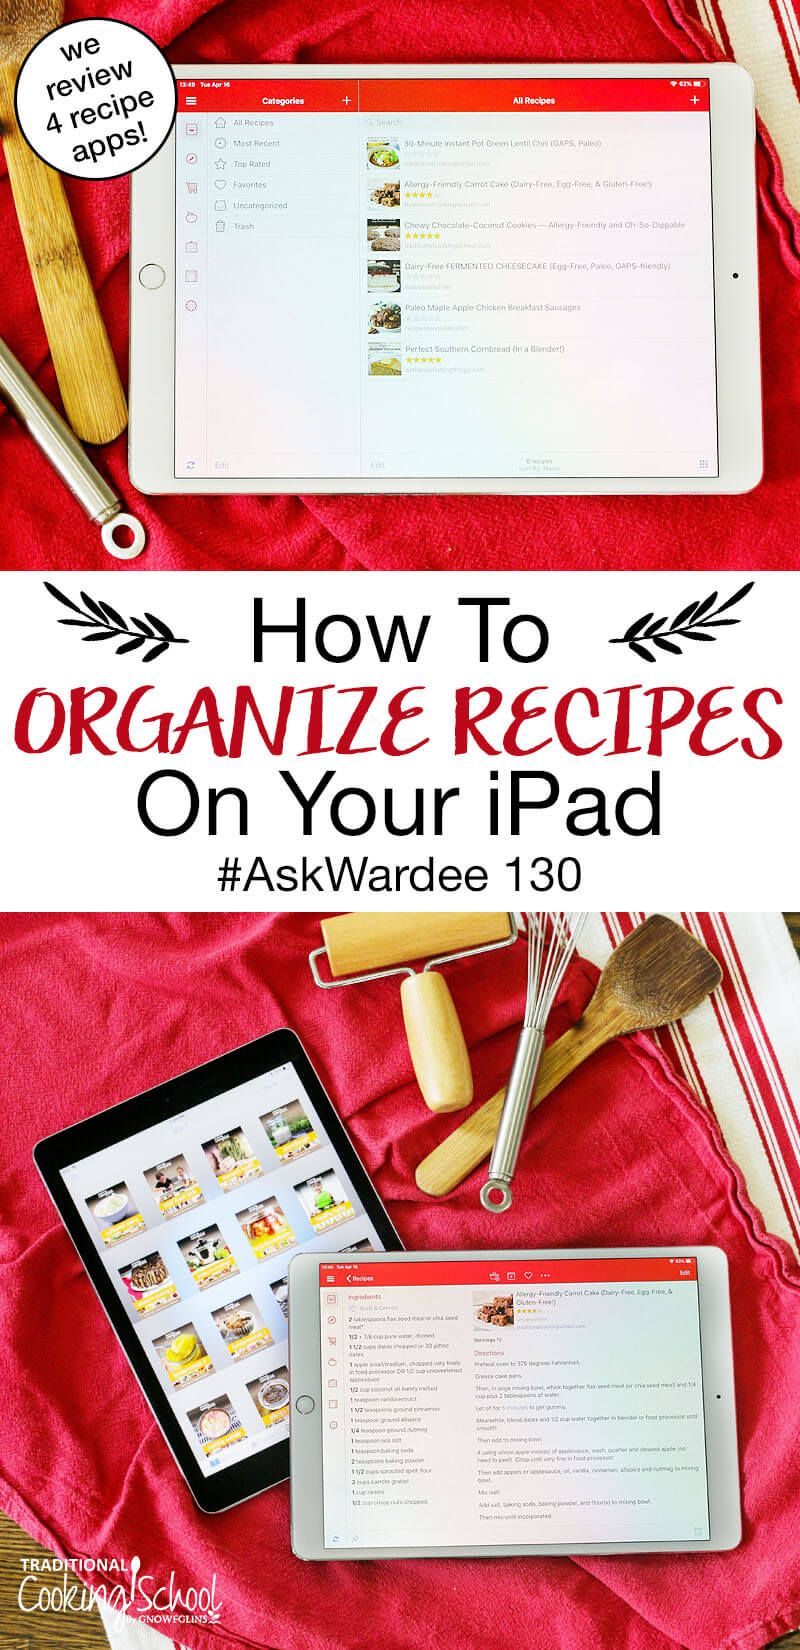 How To Organize Recipes On Your iPad AskWardee 130